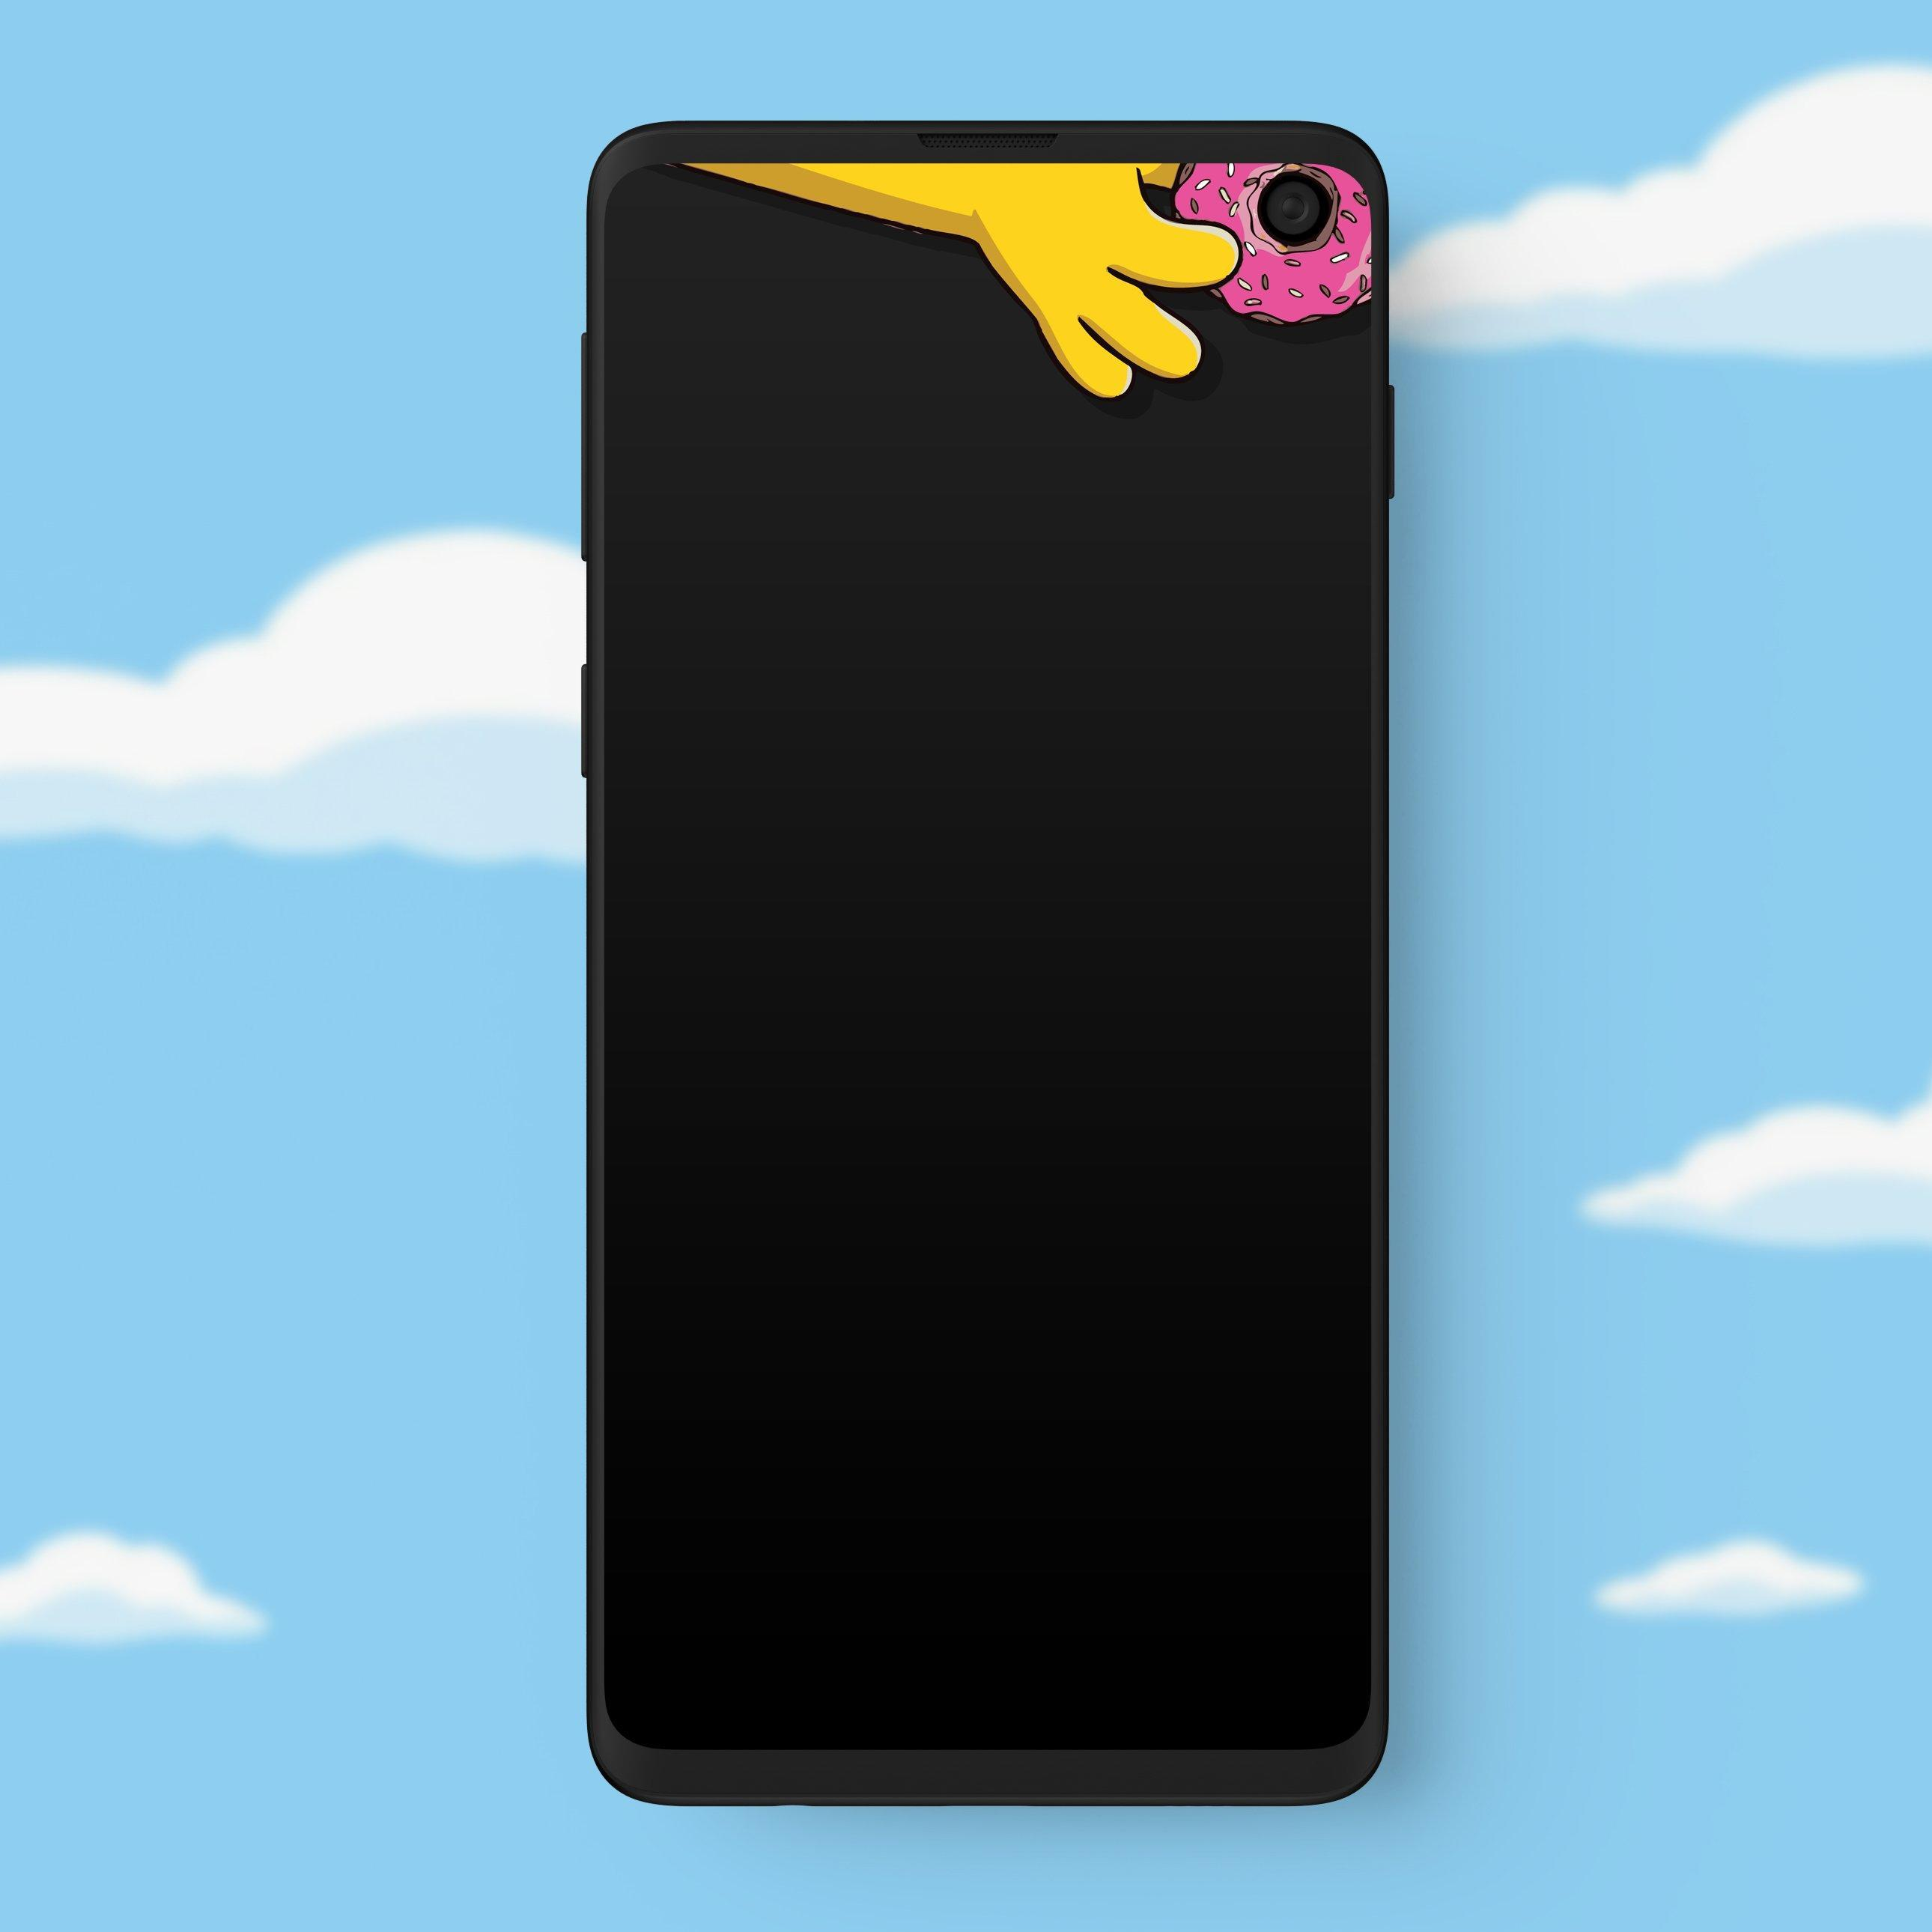 Galaxy S10 Hole Punch Wallpapers For Android Apk Download